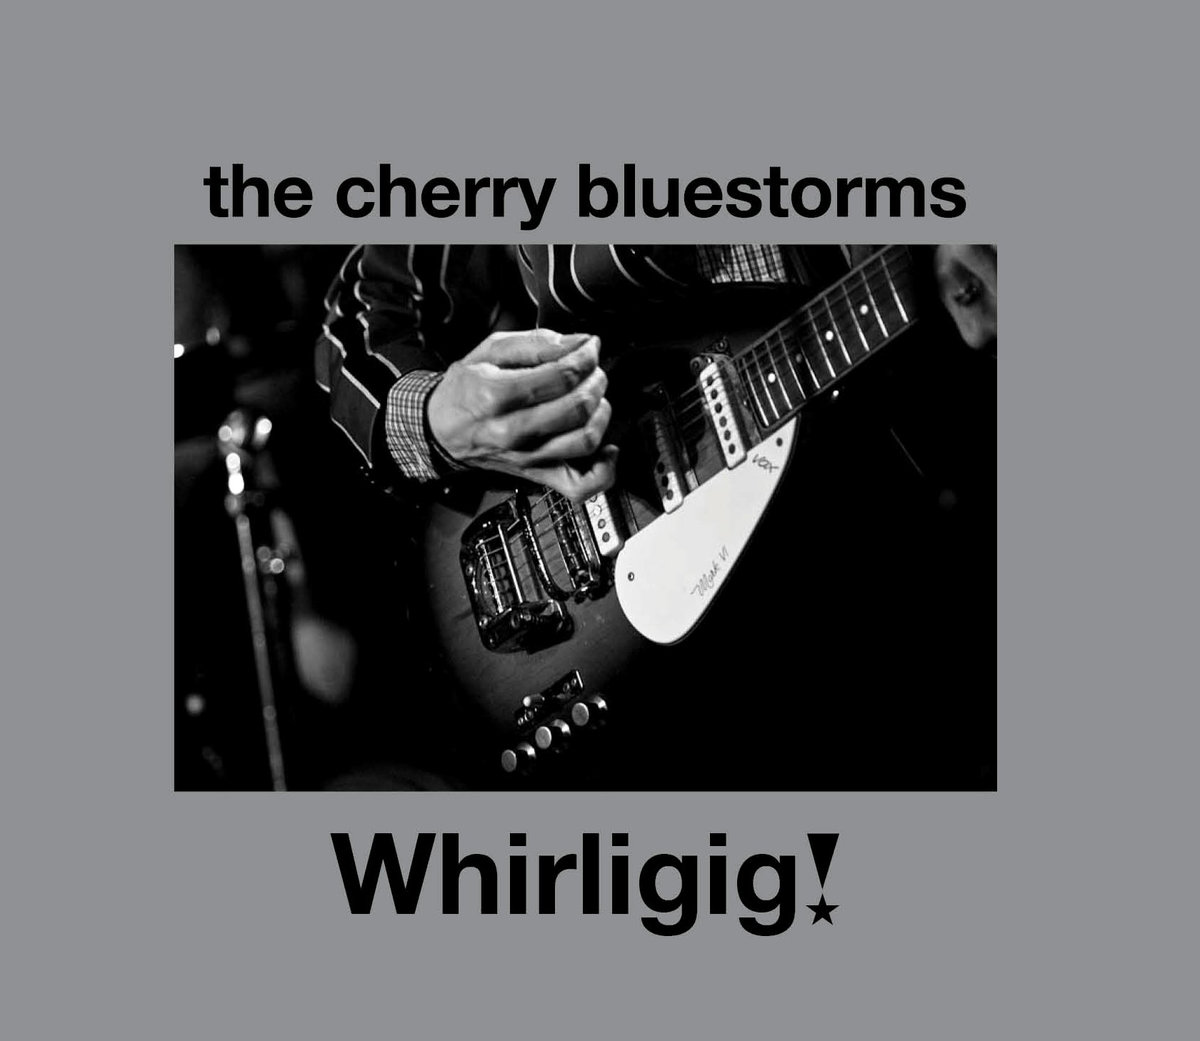 the cherry bluestorms whirligig album cover